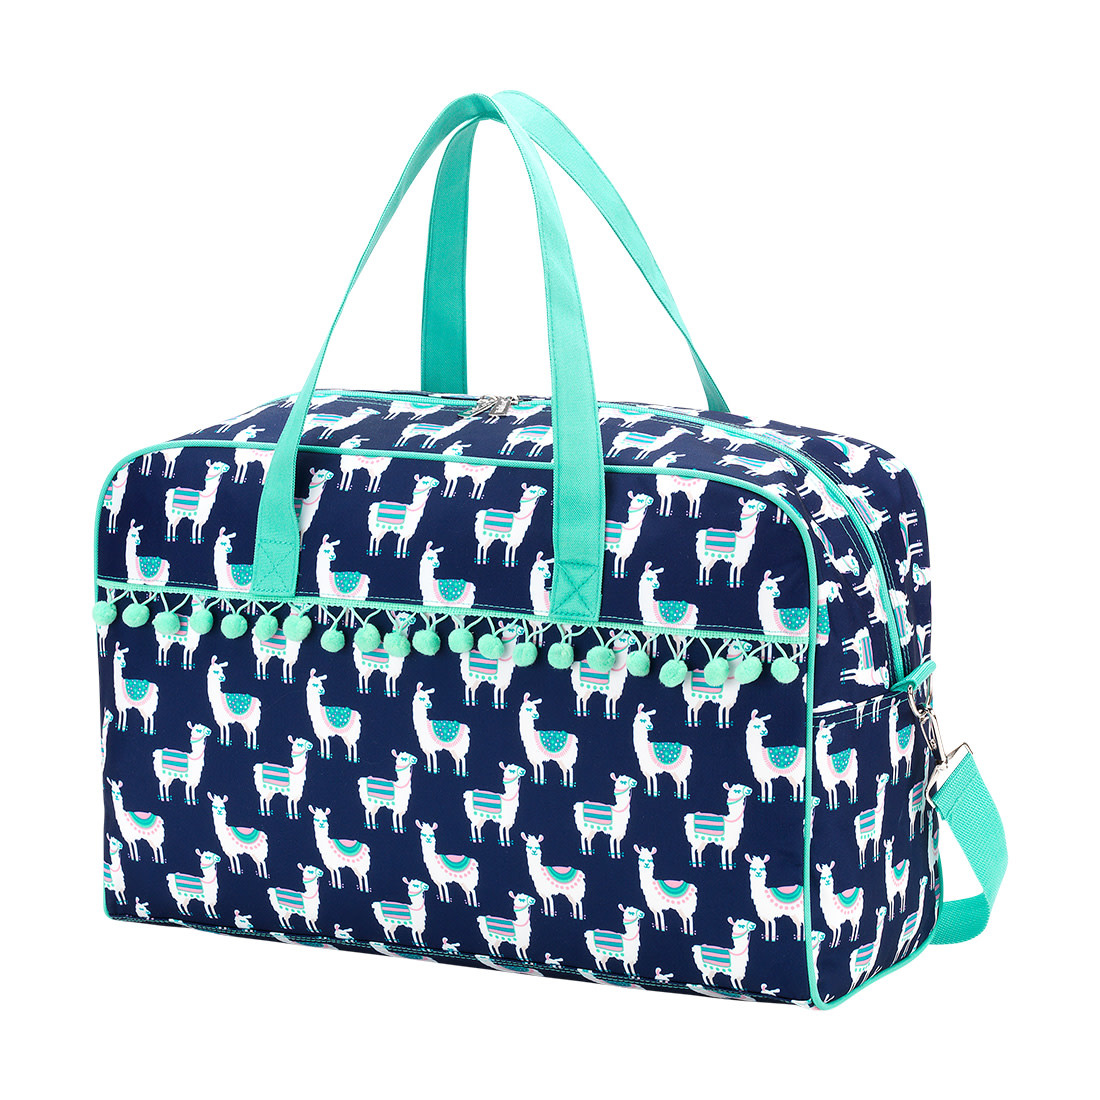 Llama Monogrammed Travel Bag Monogram Included